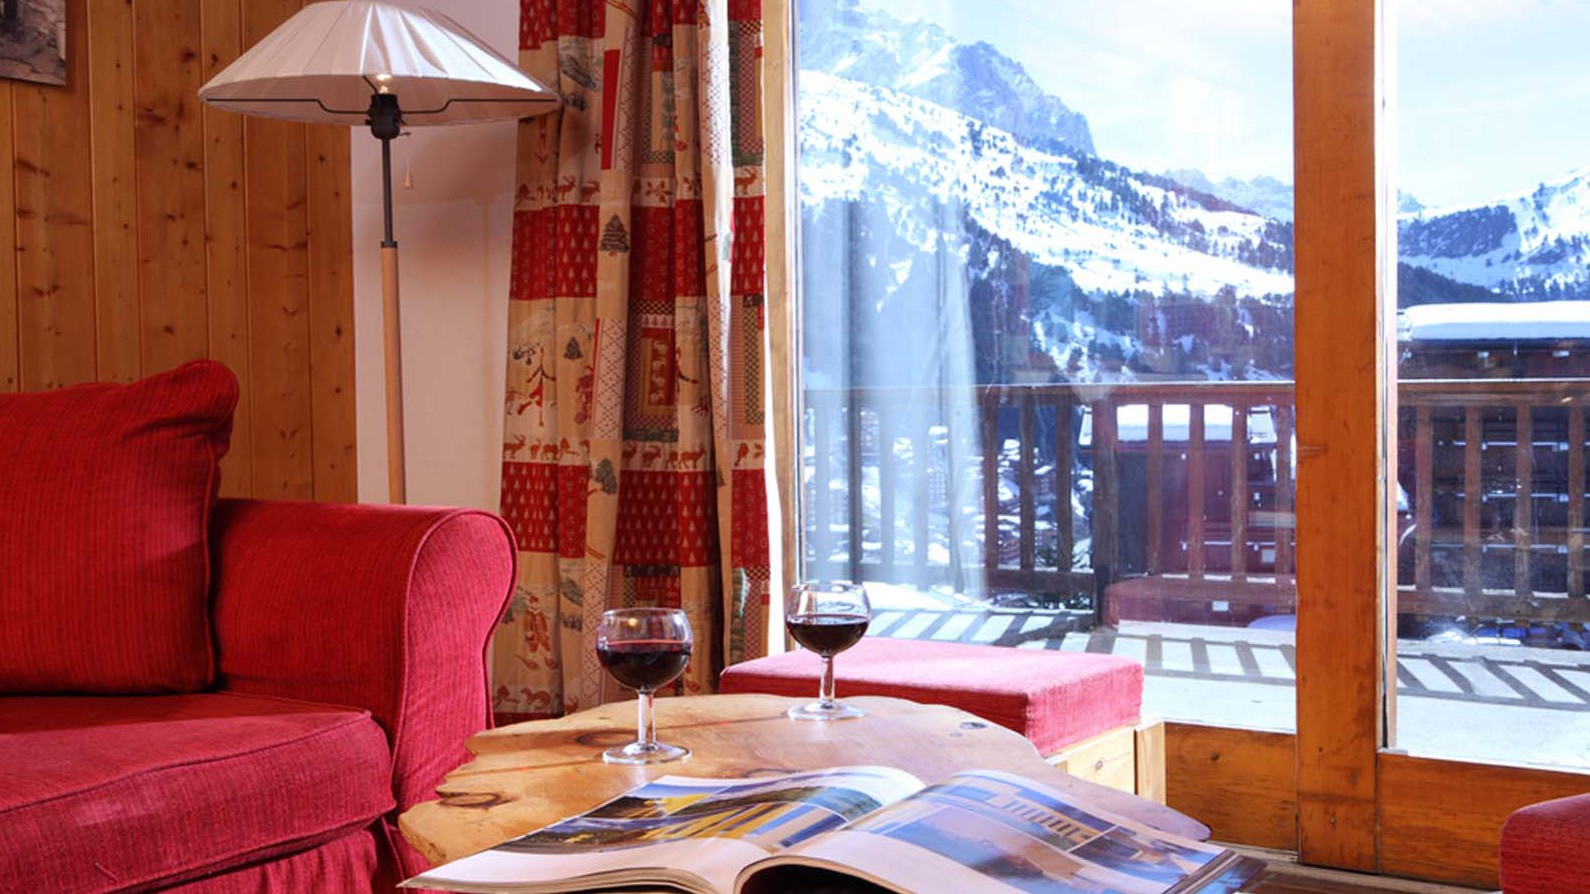 Chalet Andre - ski chalet in Meribel, France